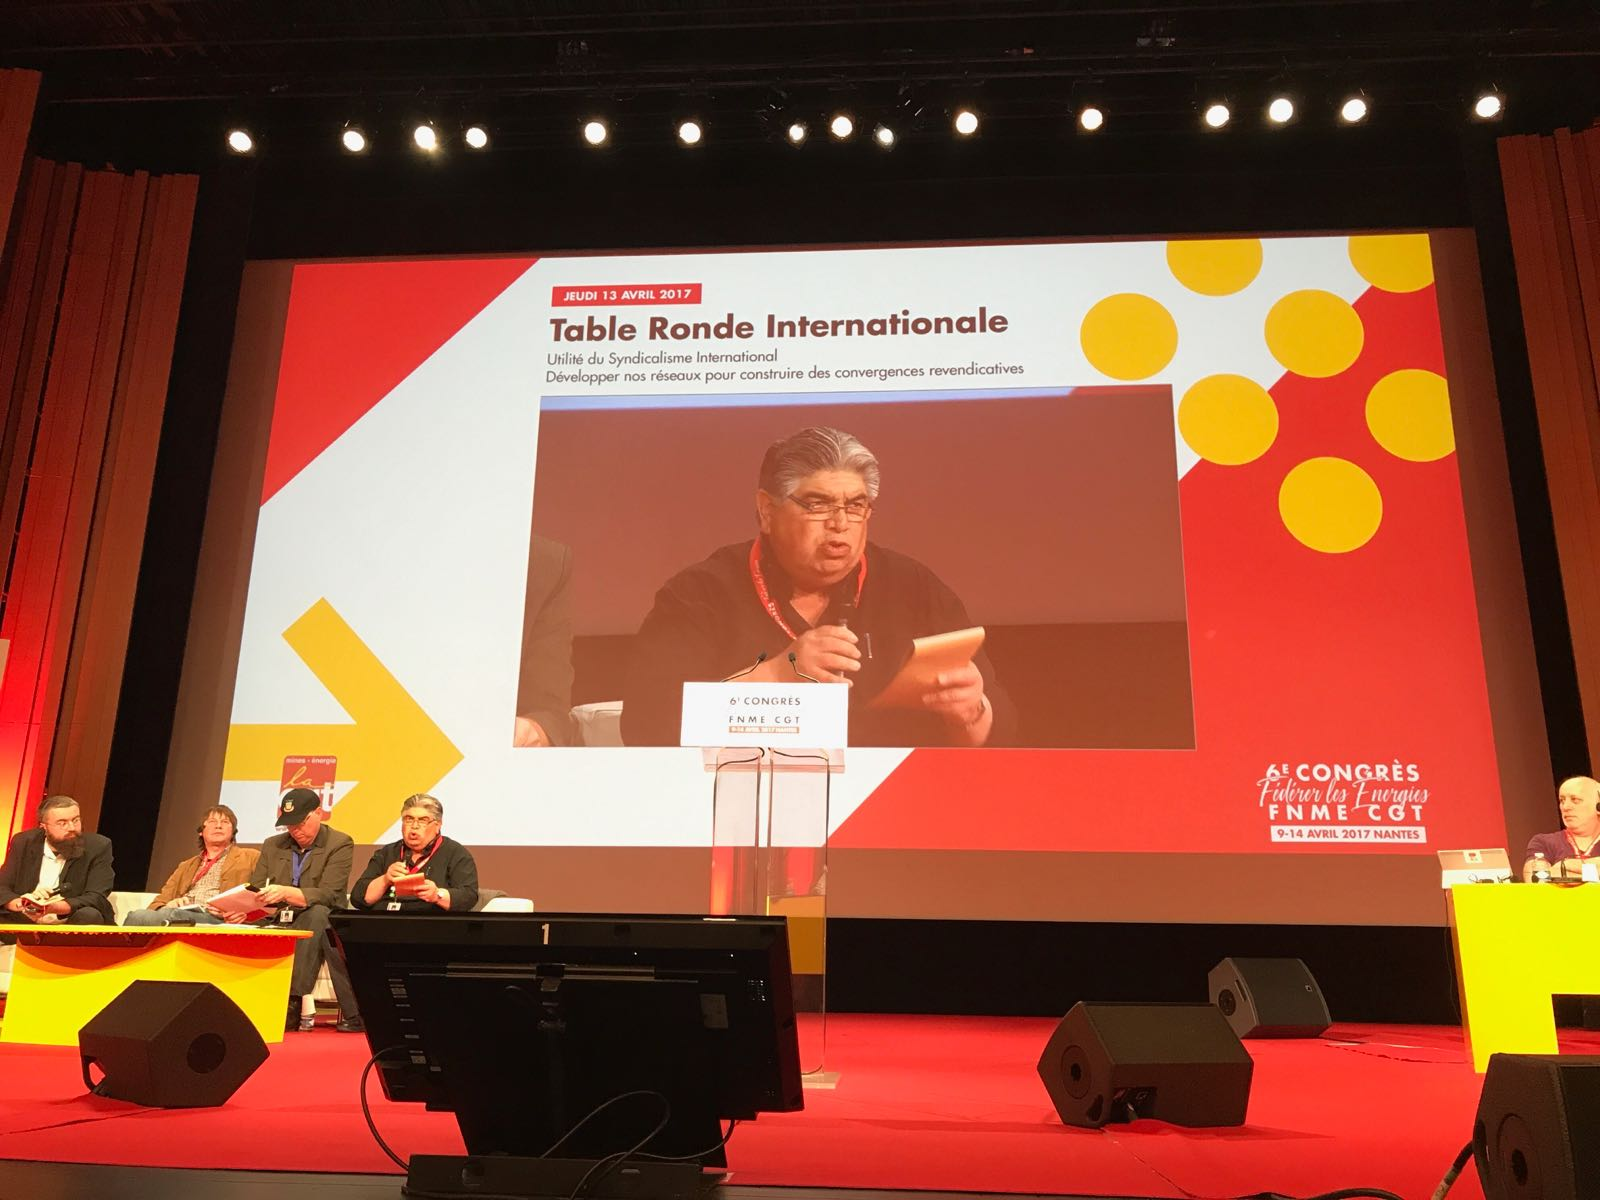 José Rigane participates at the 6th Congress of the National Federation of Mining and Energy of France